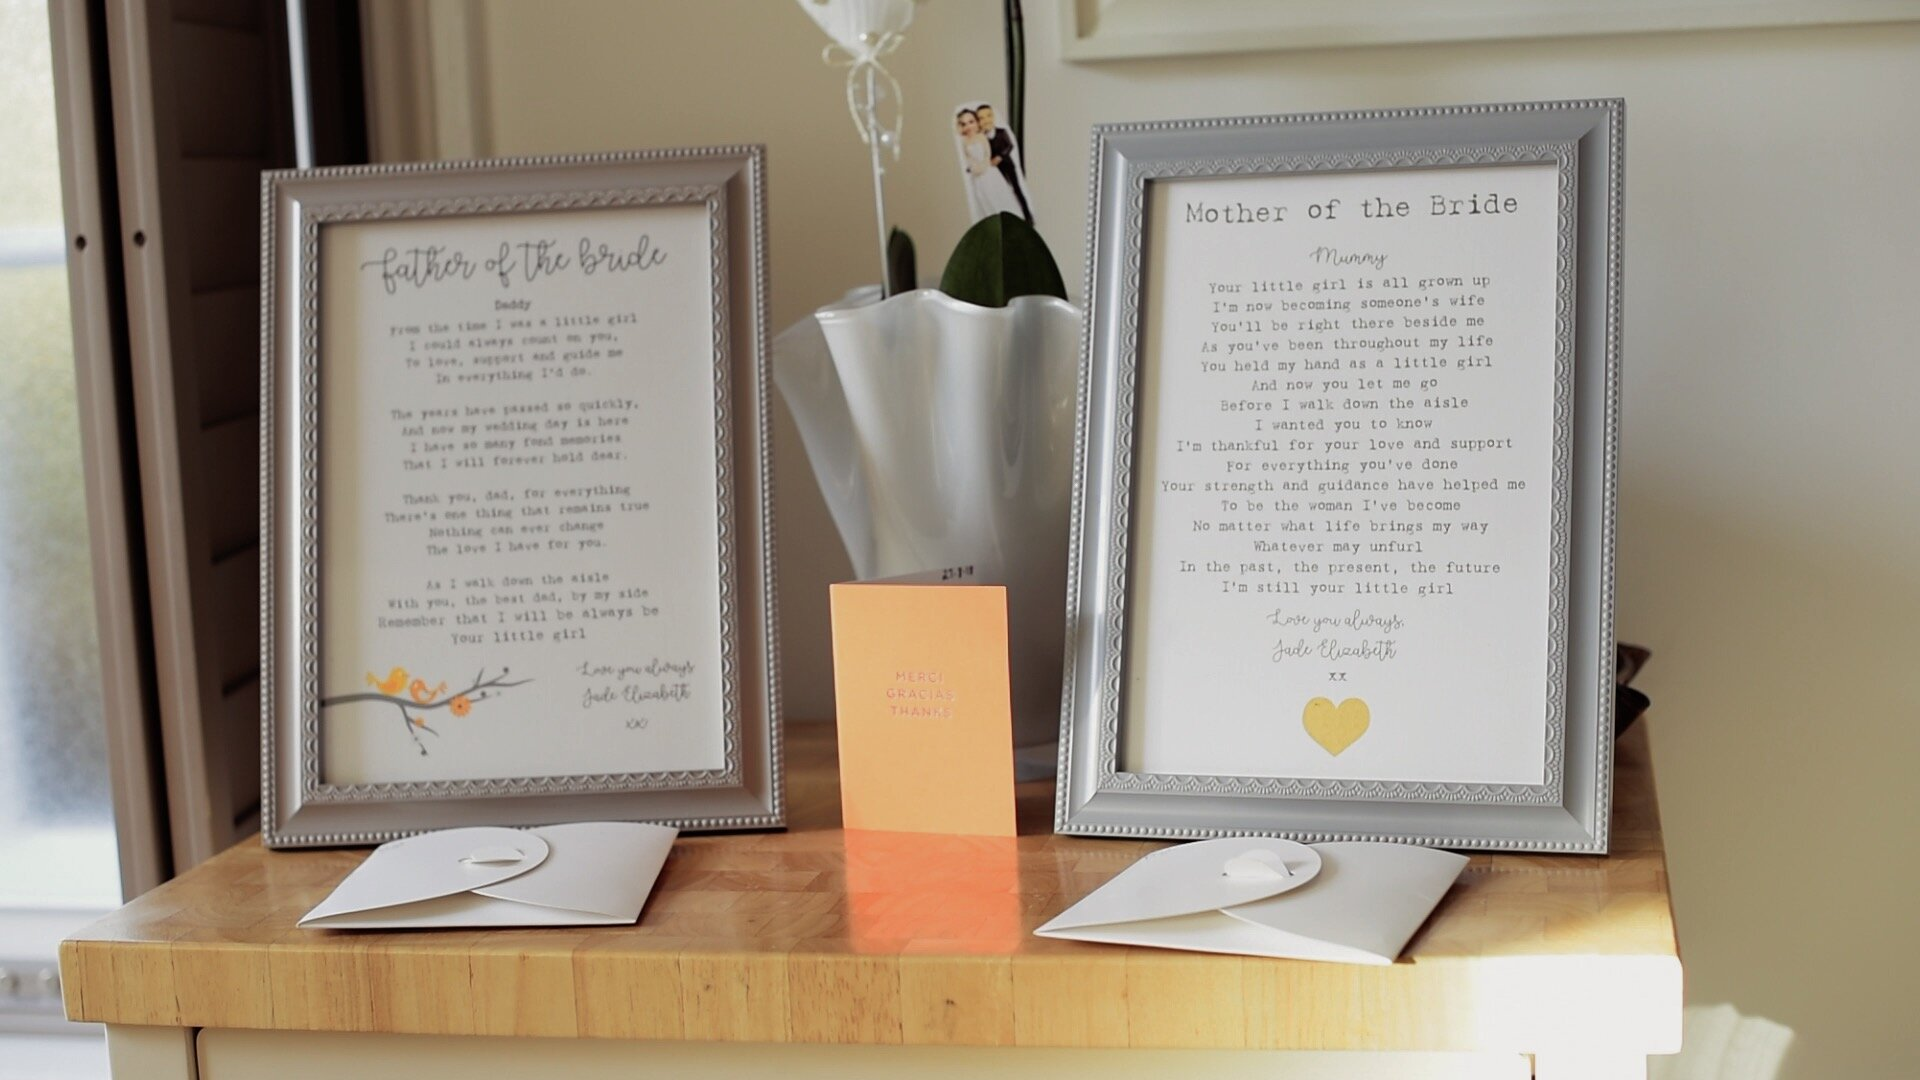 The Brides gifts for her mother and father. They are two framed images of bespoke letters she has written to each of them, thanking them for all their work raising her.